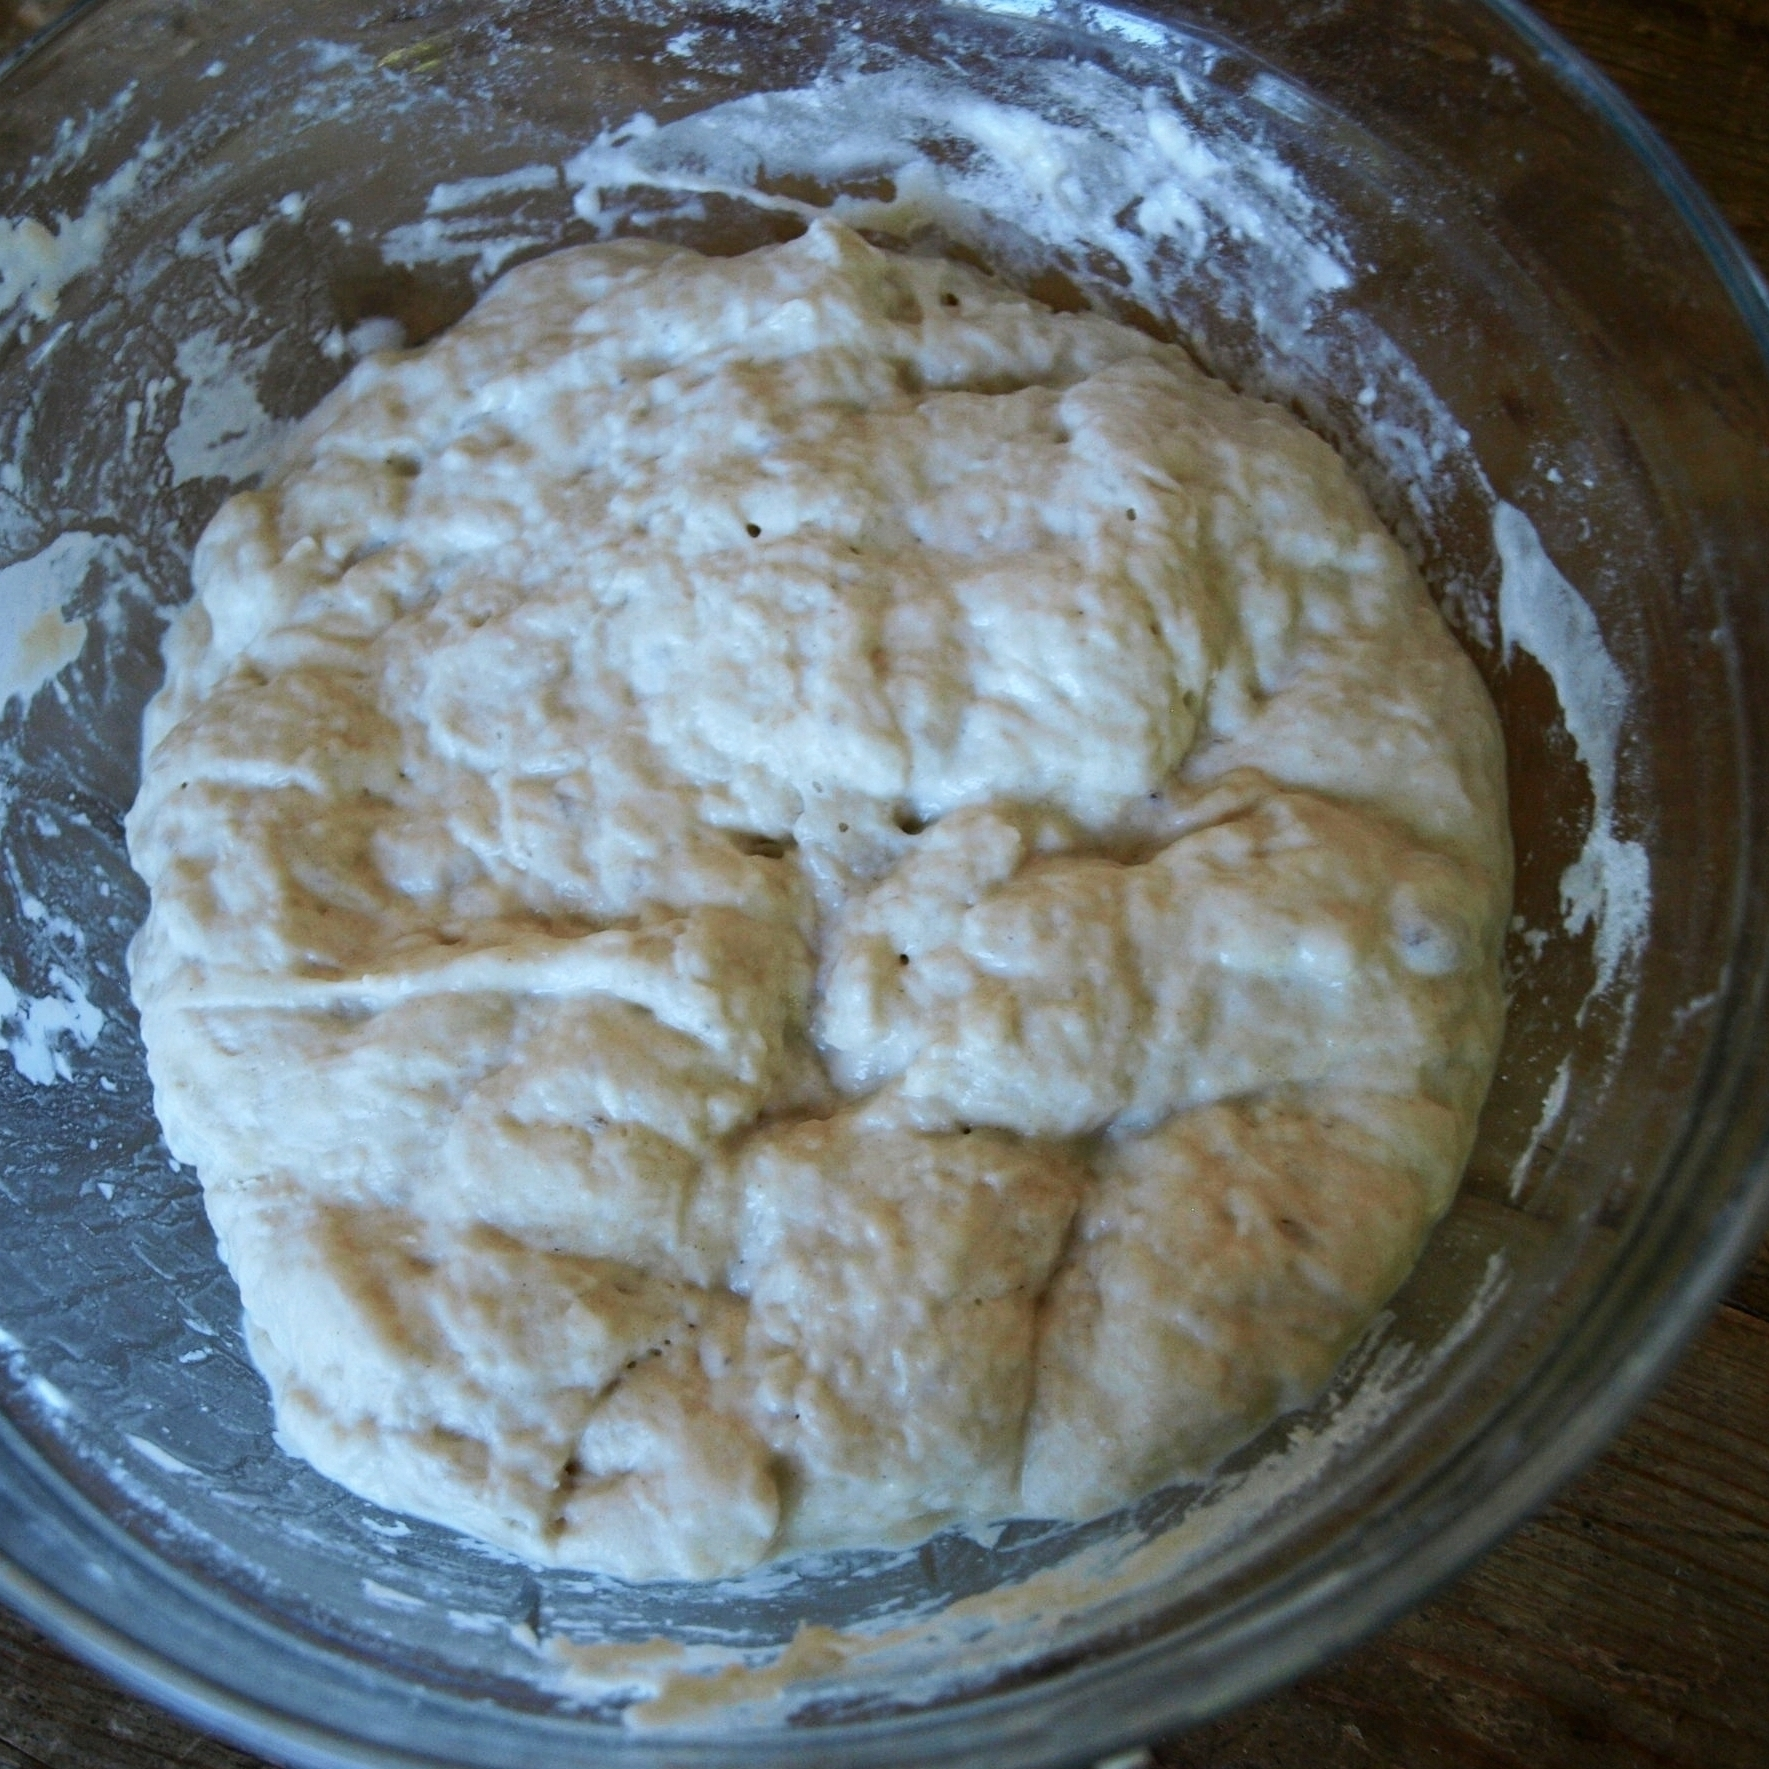 A wet, craggy dough